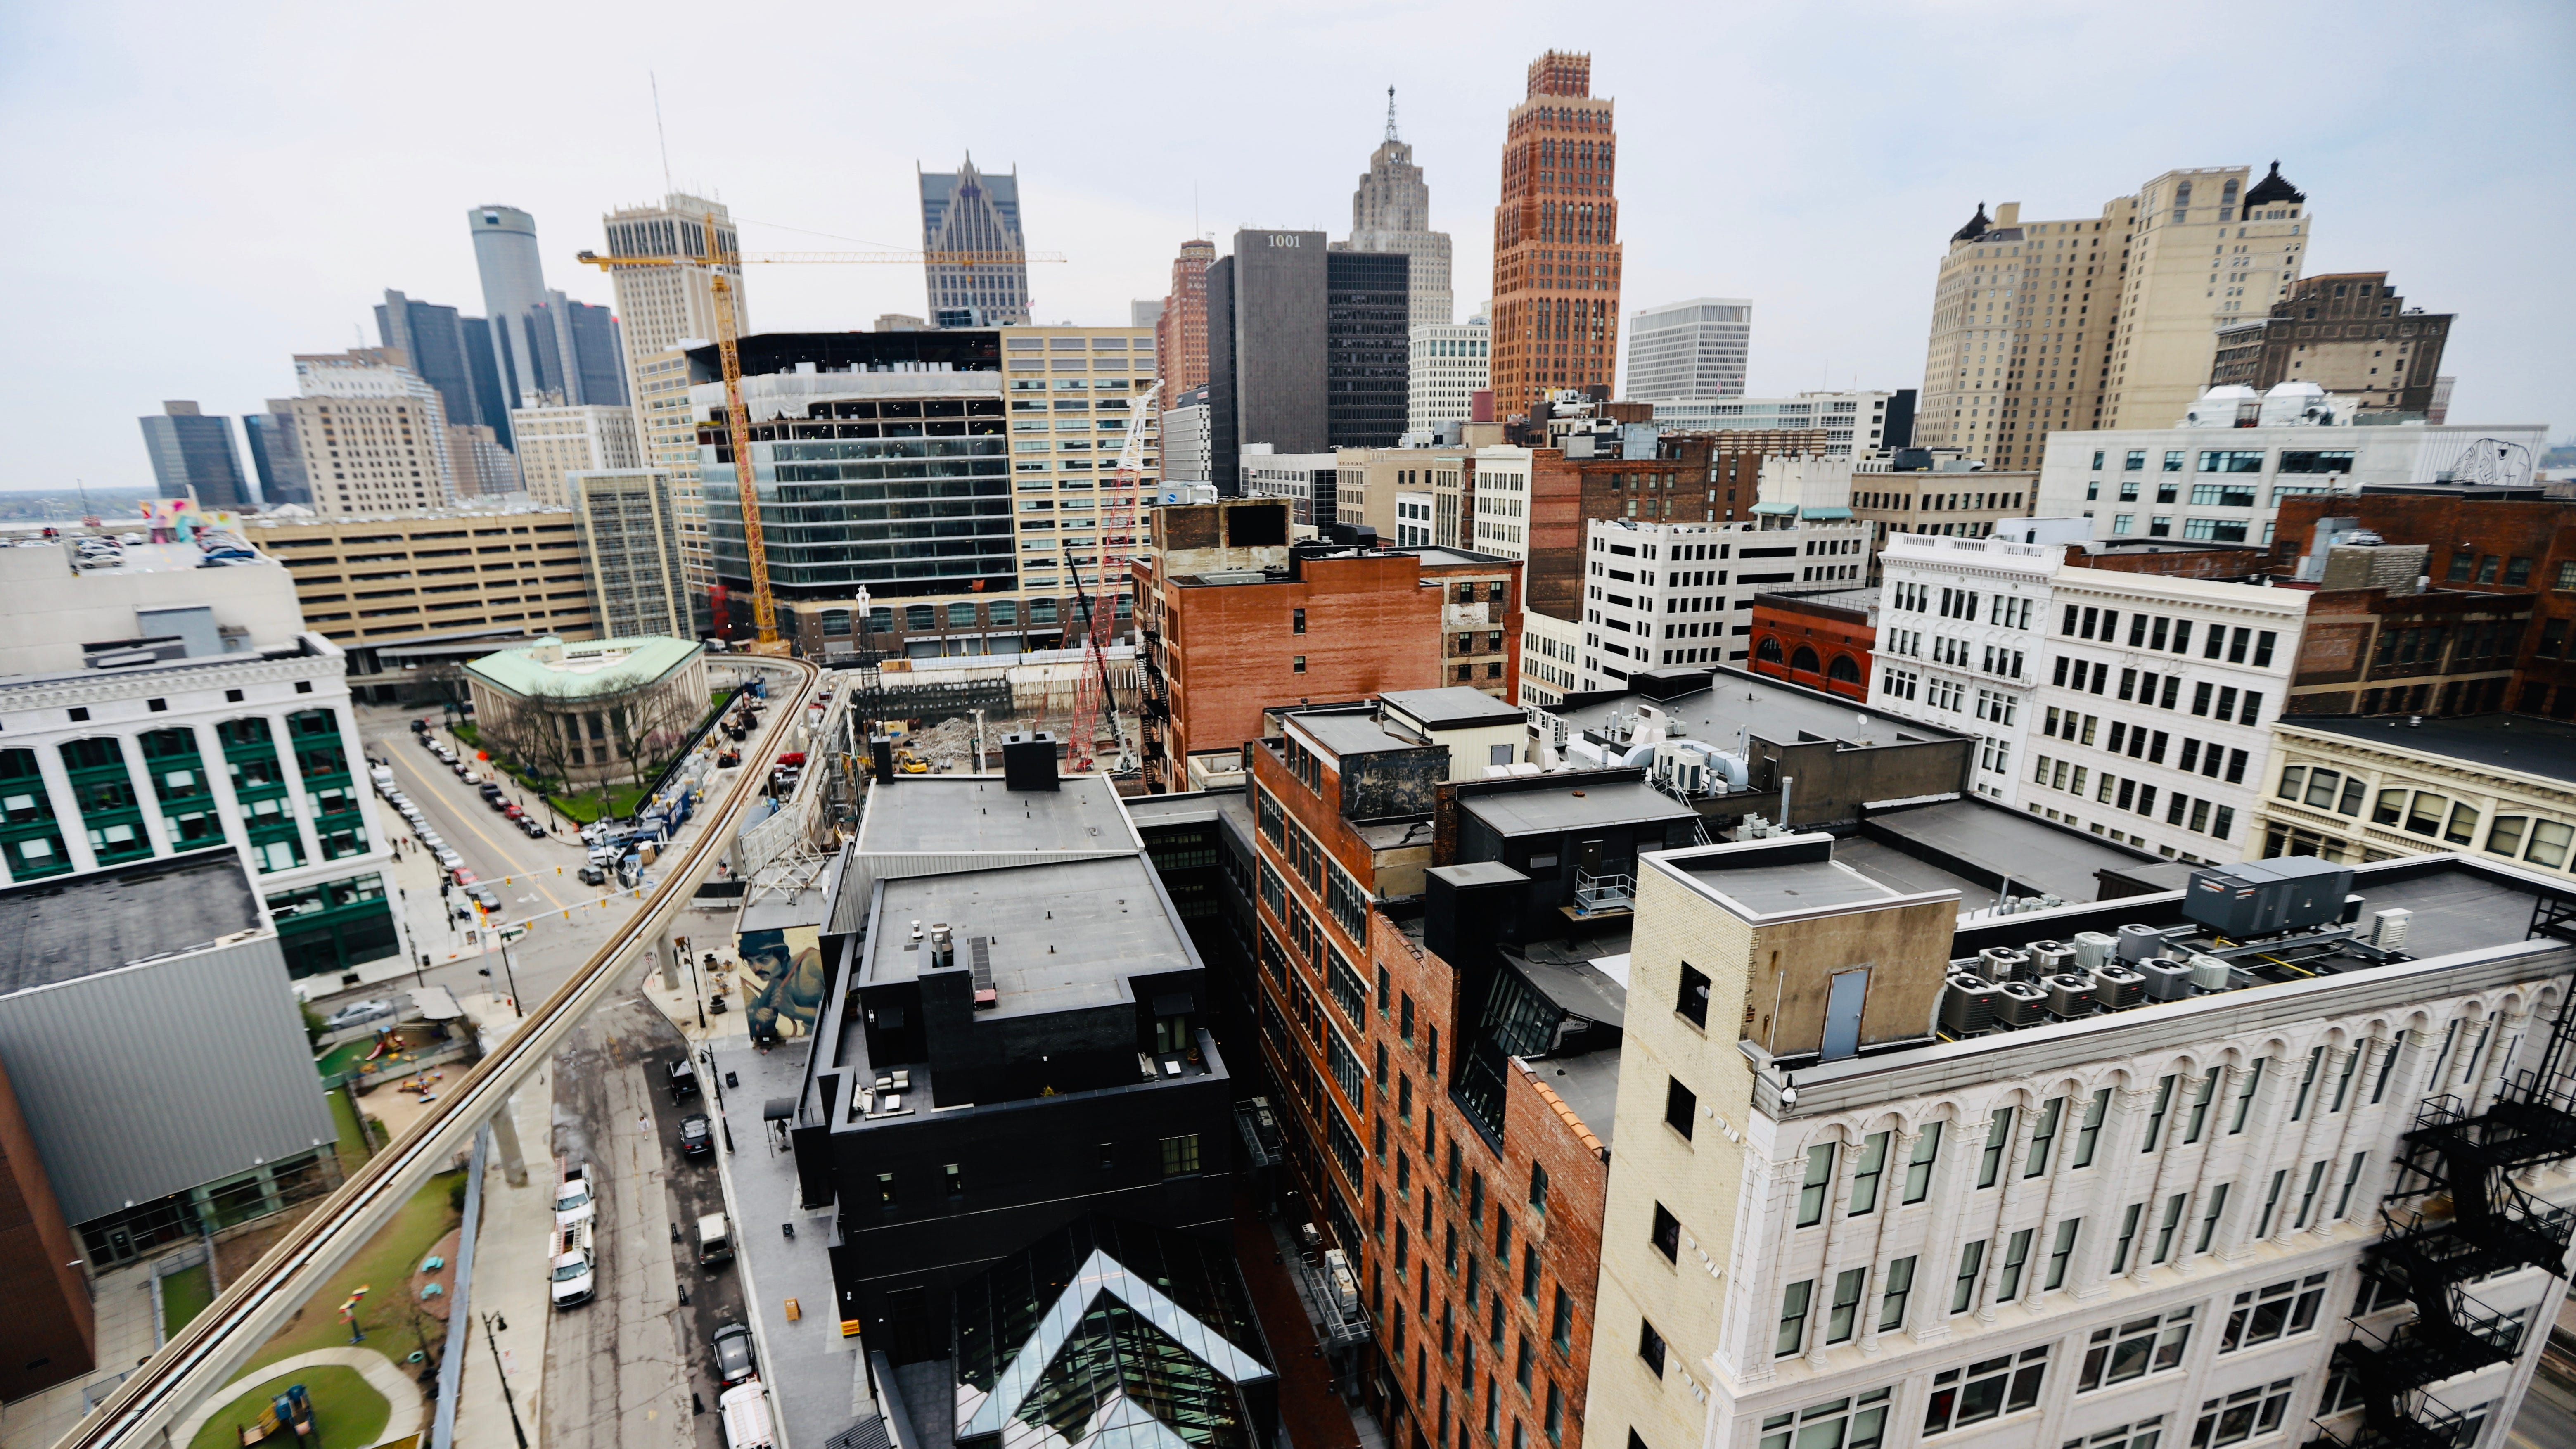 The Monarch Club rooftop bar opening soon in downtown Detroit